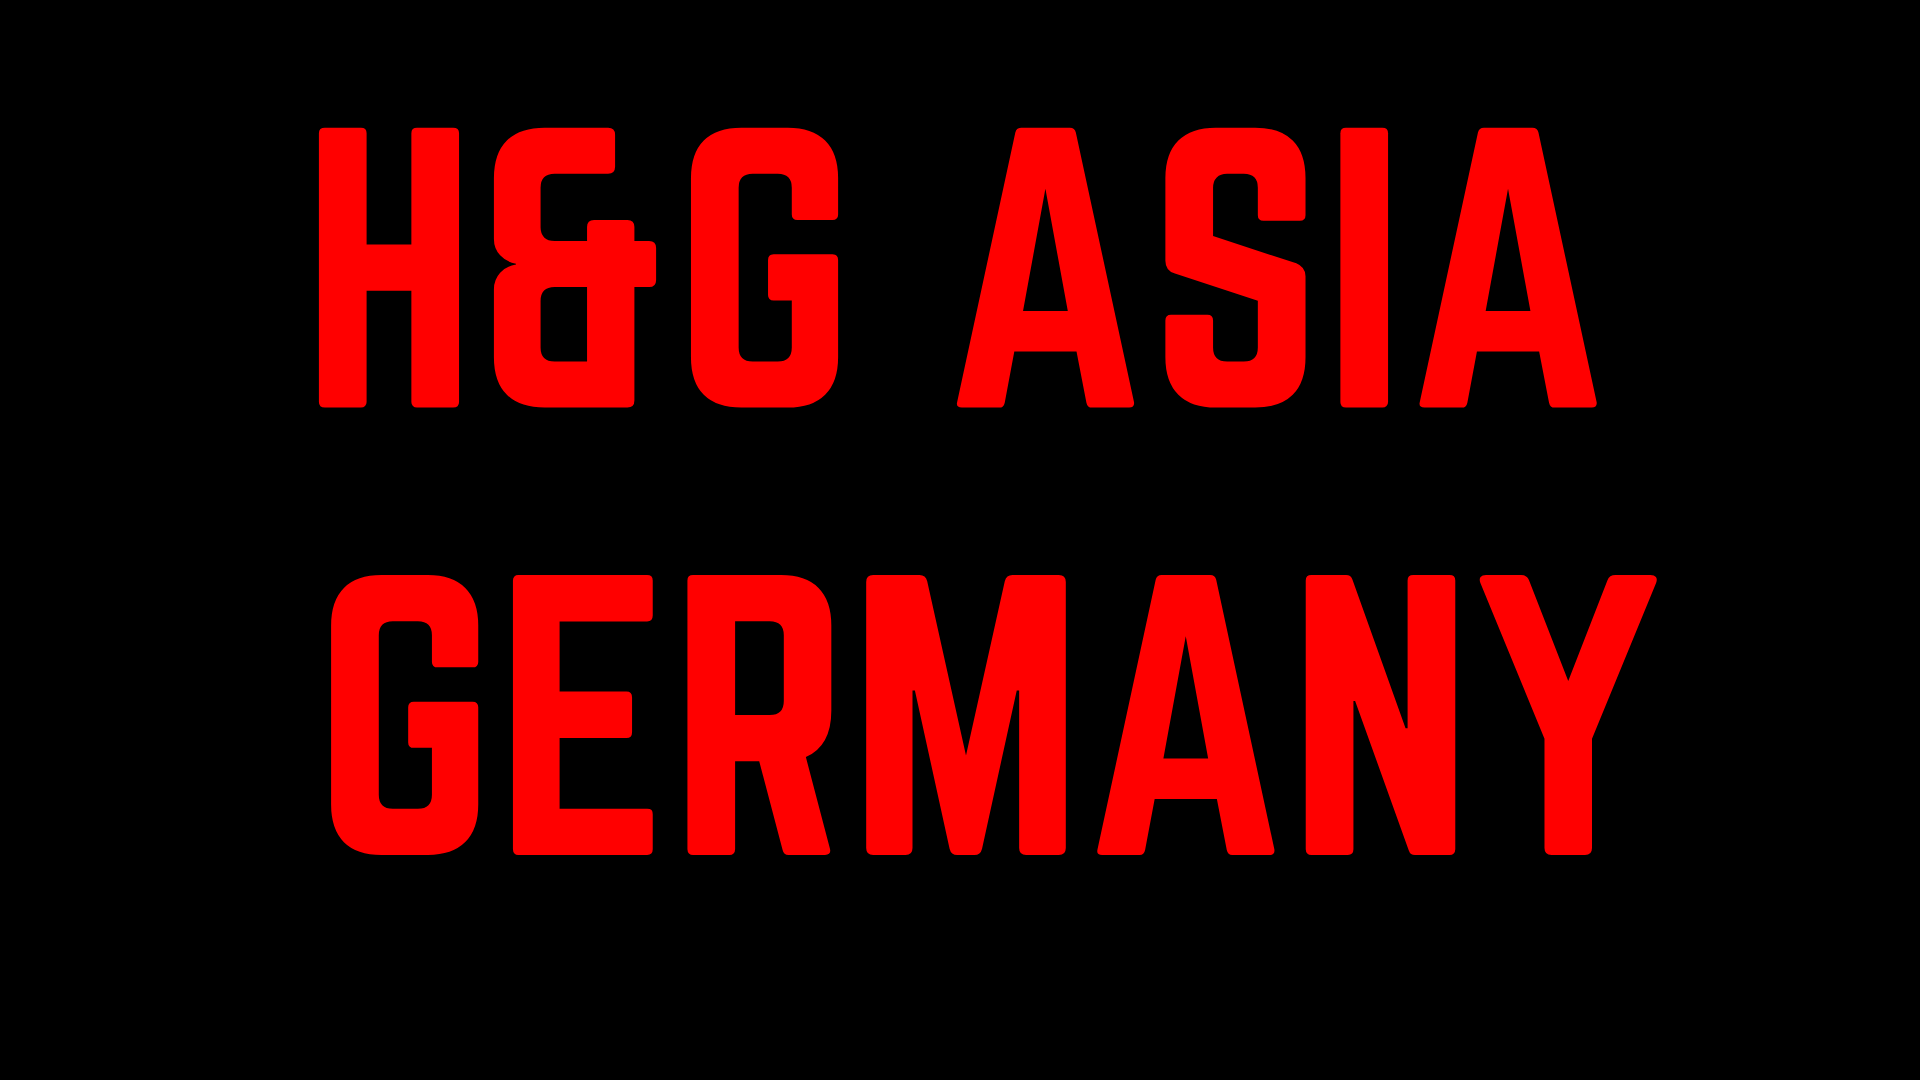 HG_Asia.png